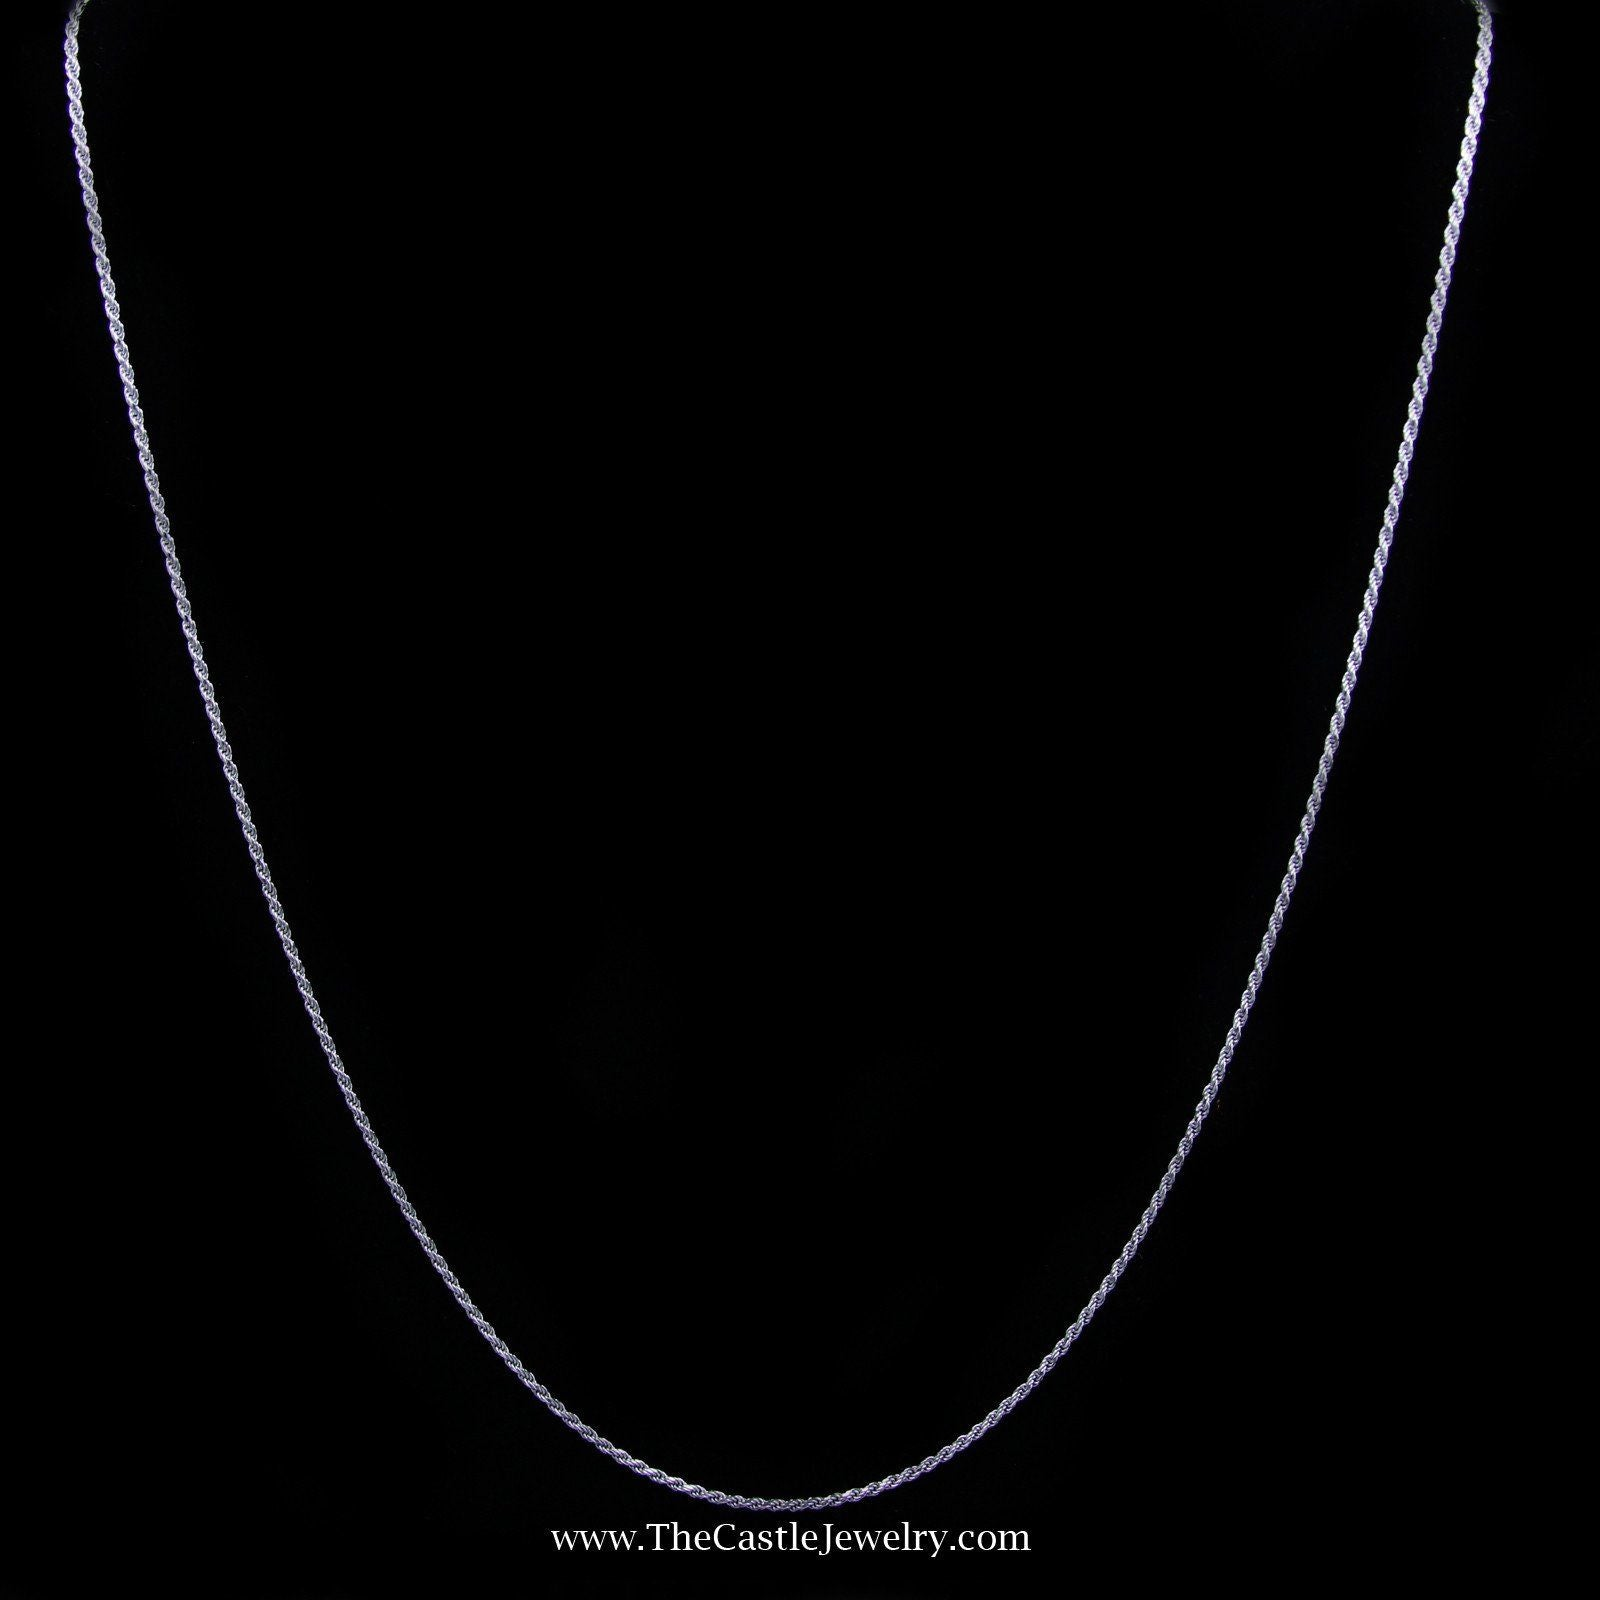 Rope Chain Necklace in 14K White Gold 18 Inches Long